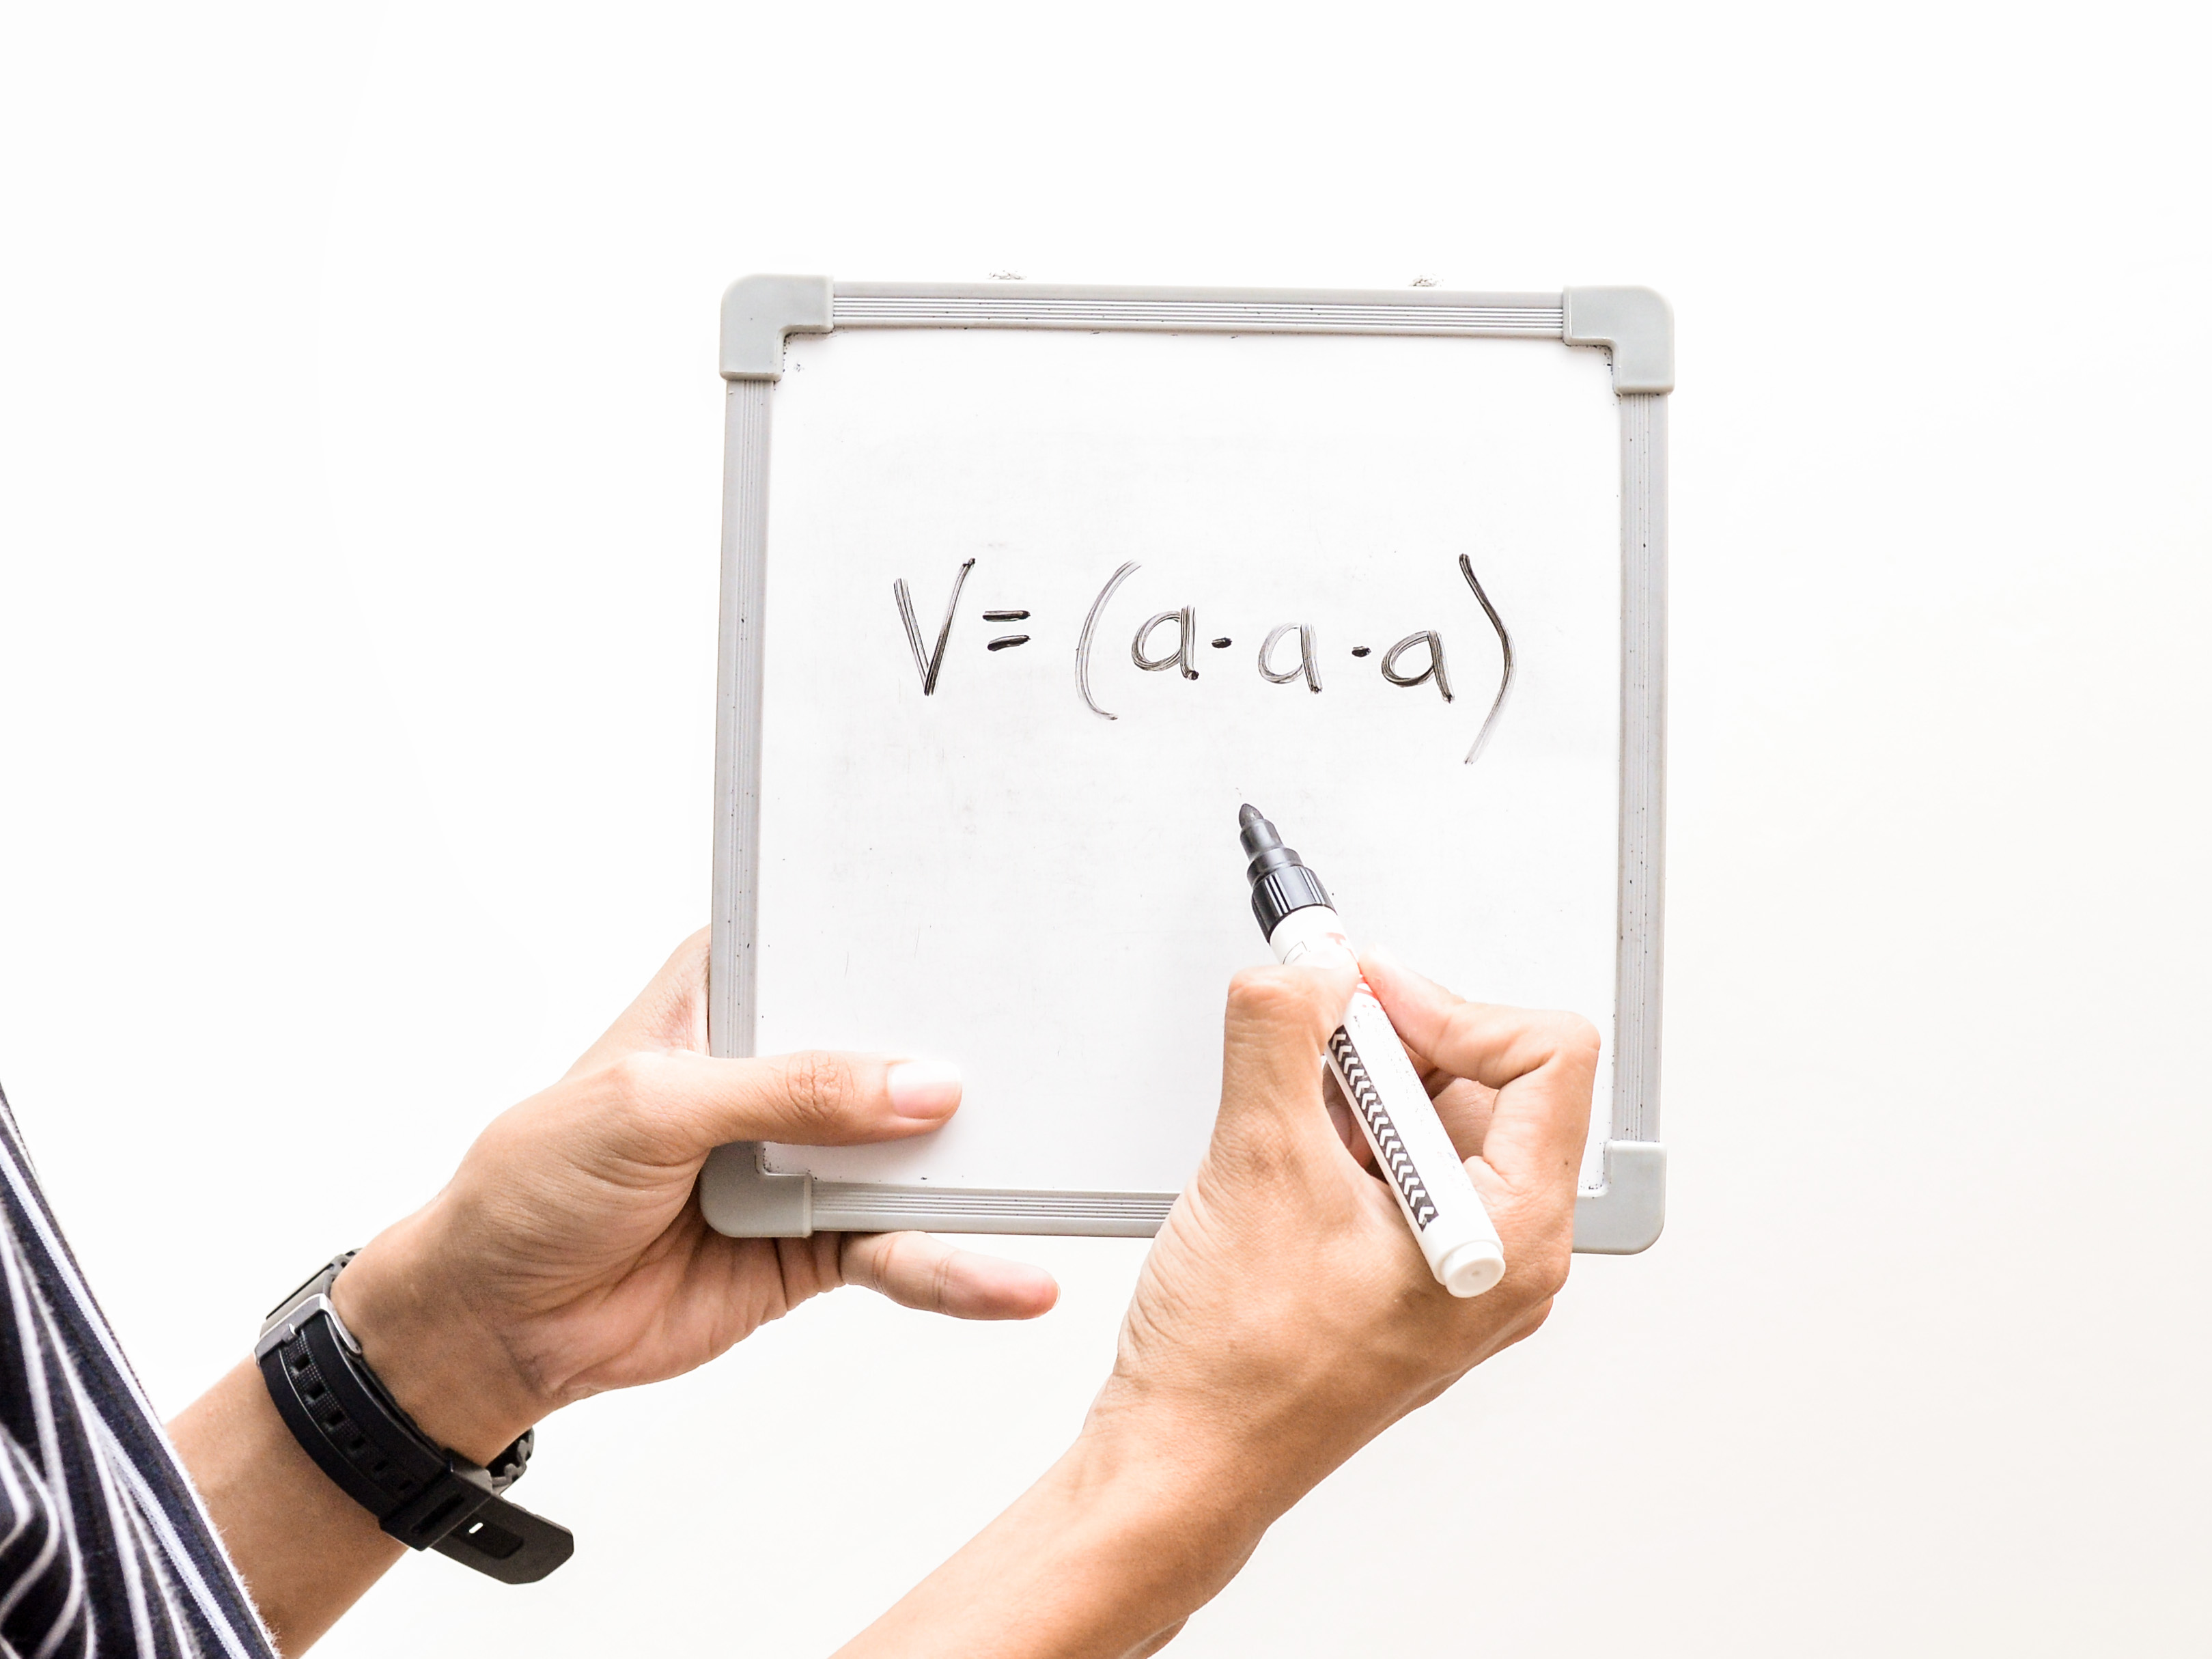 How To Find The Surface Area And Volume Of A Cube 3 Steps